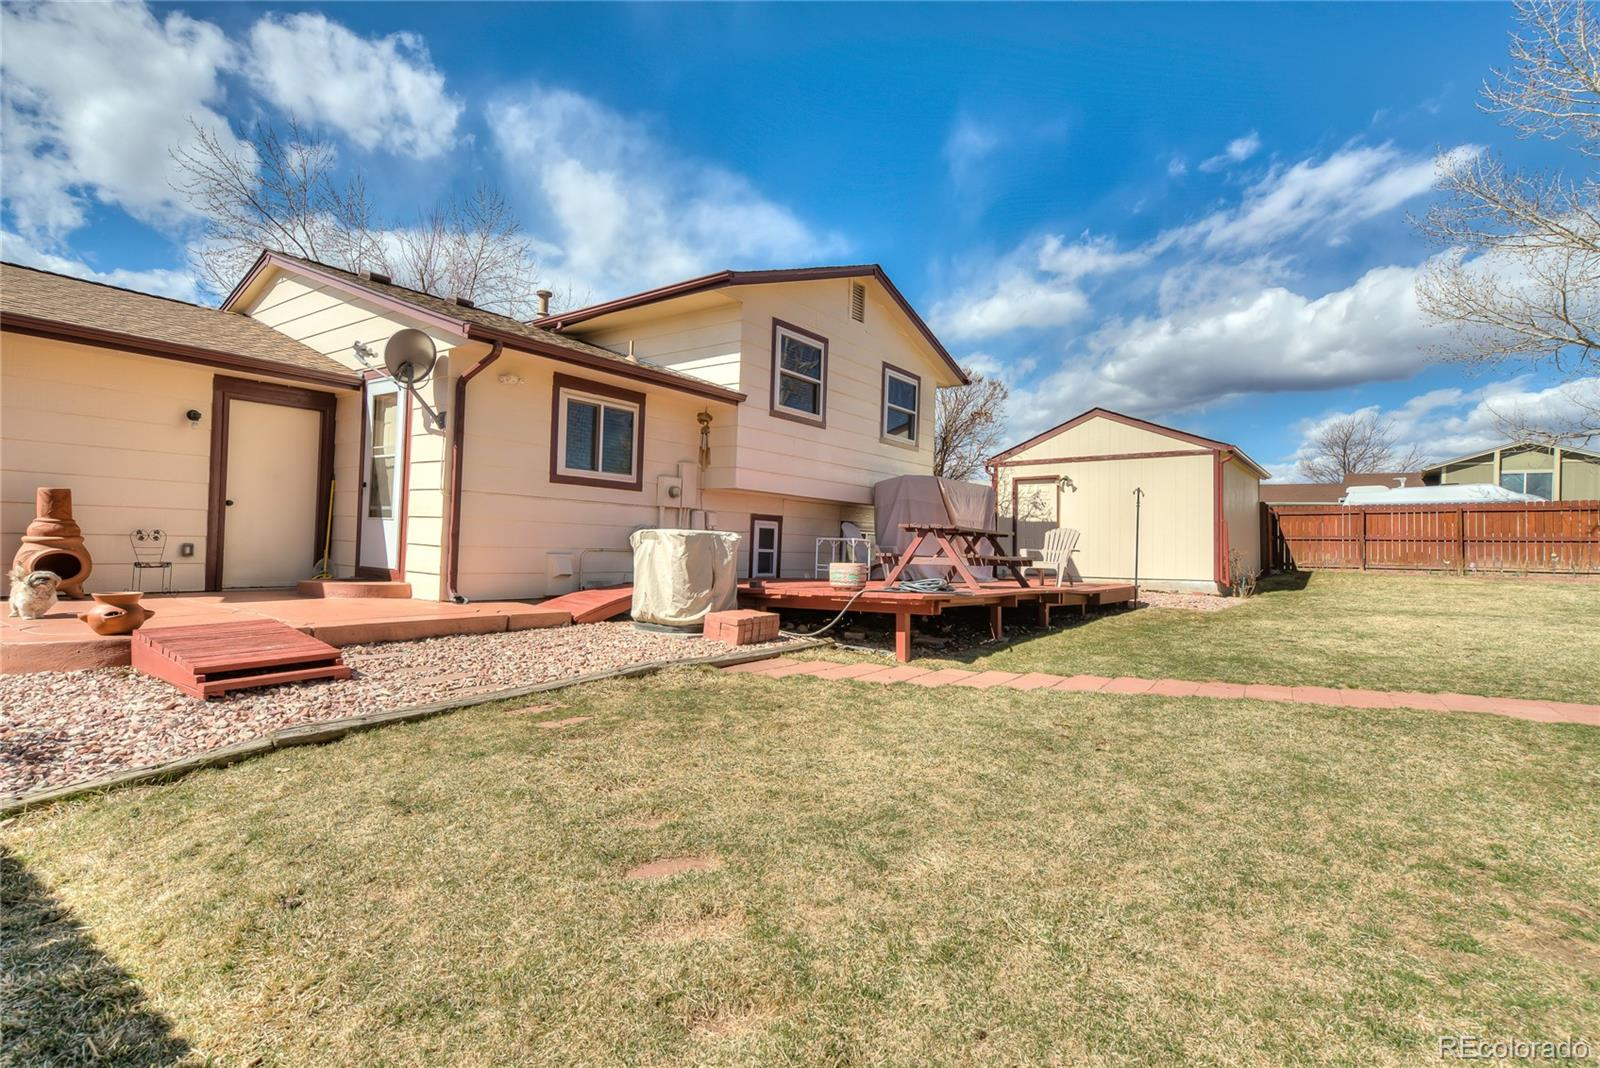 MLS# 2811379 - 24 - 9645 W David Avenue, Littleton, CO 80128